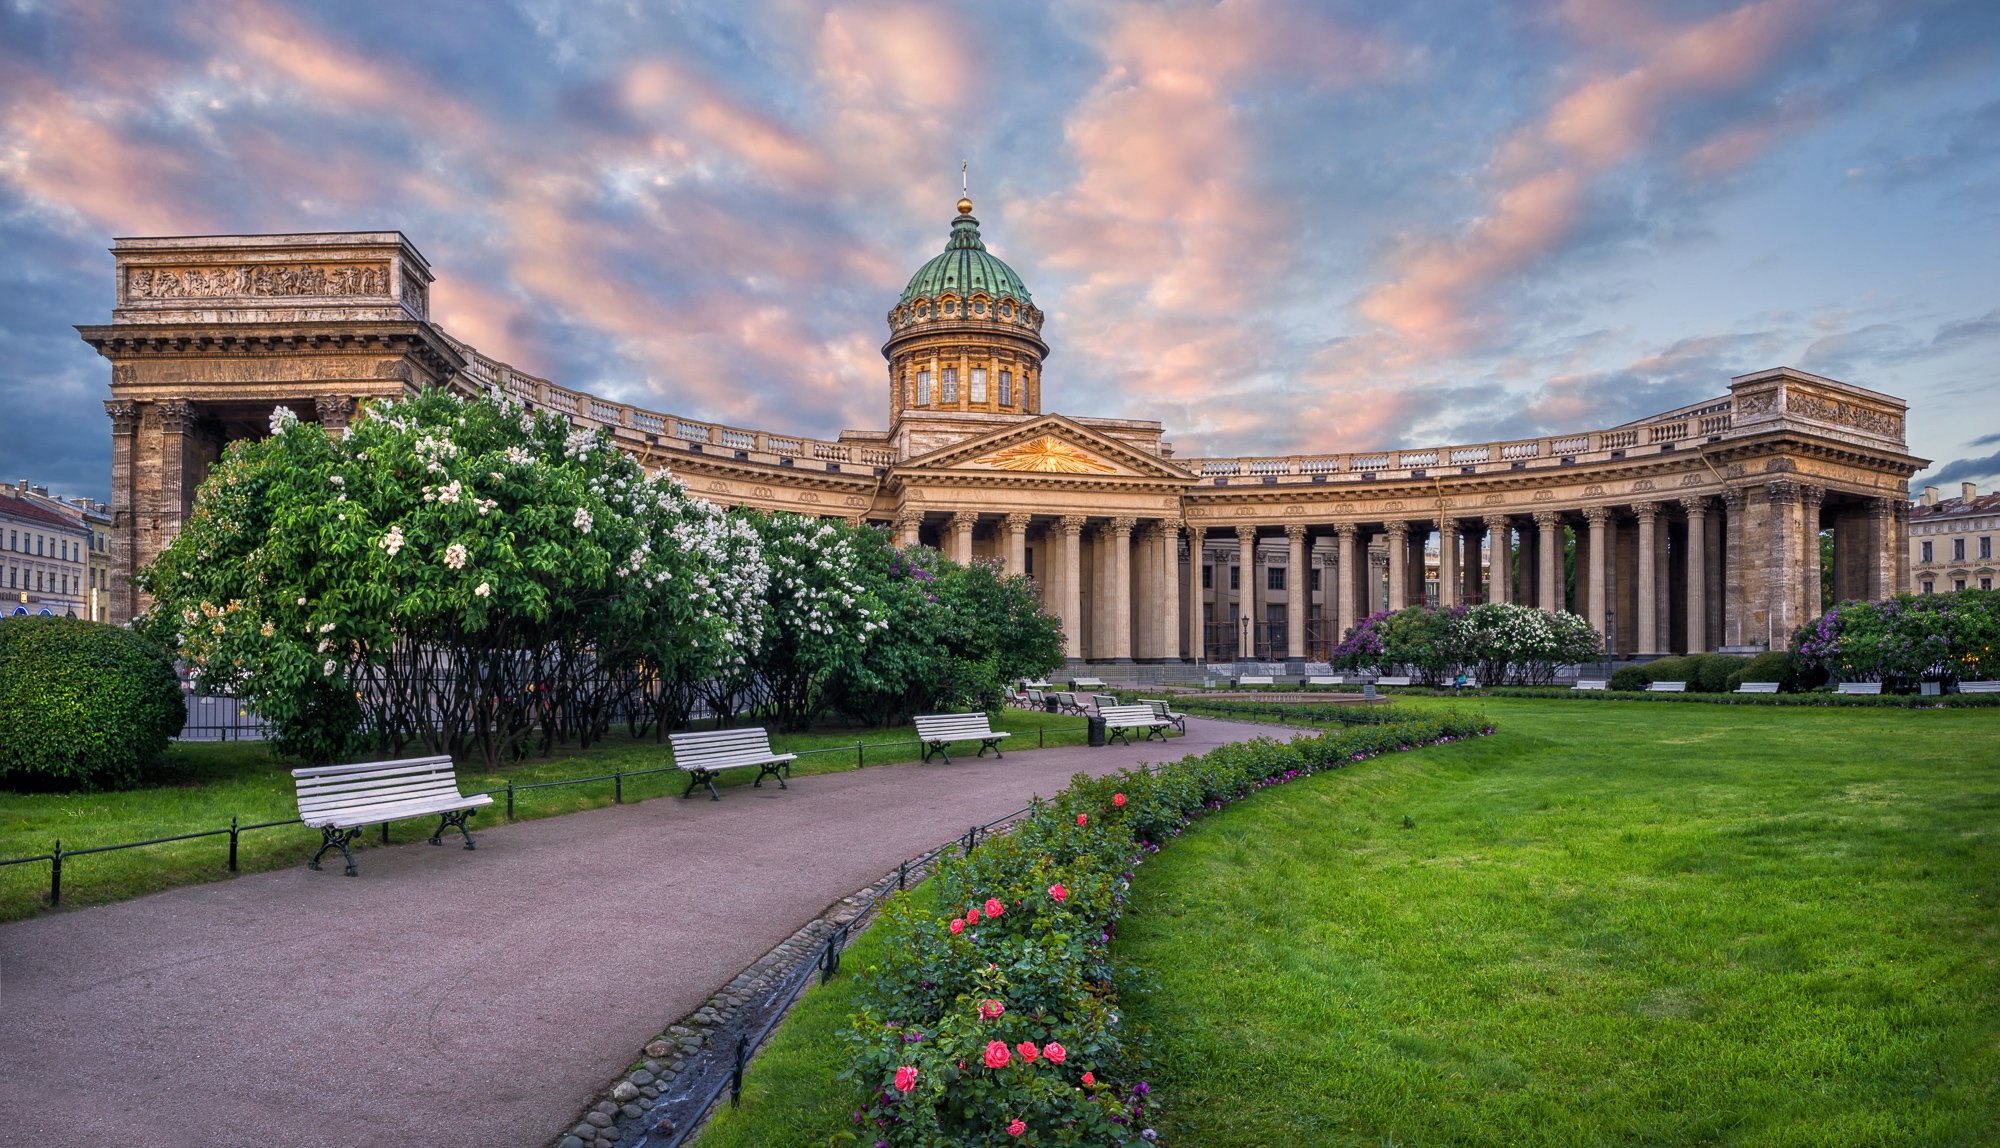 Kazan Cathedral in St Petersburg